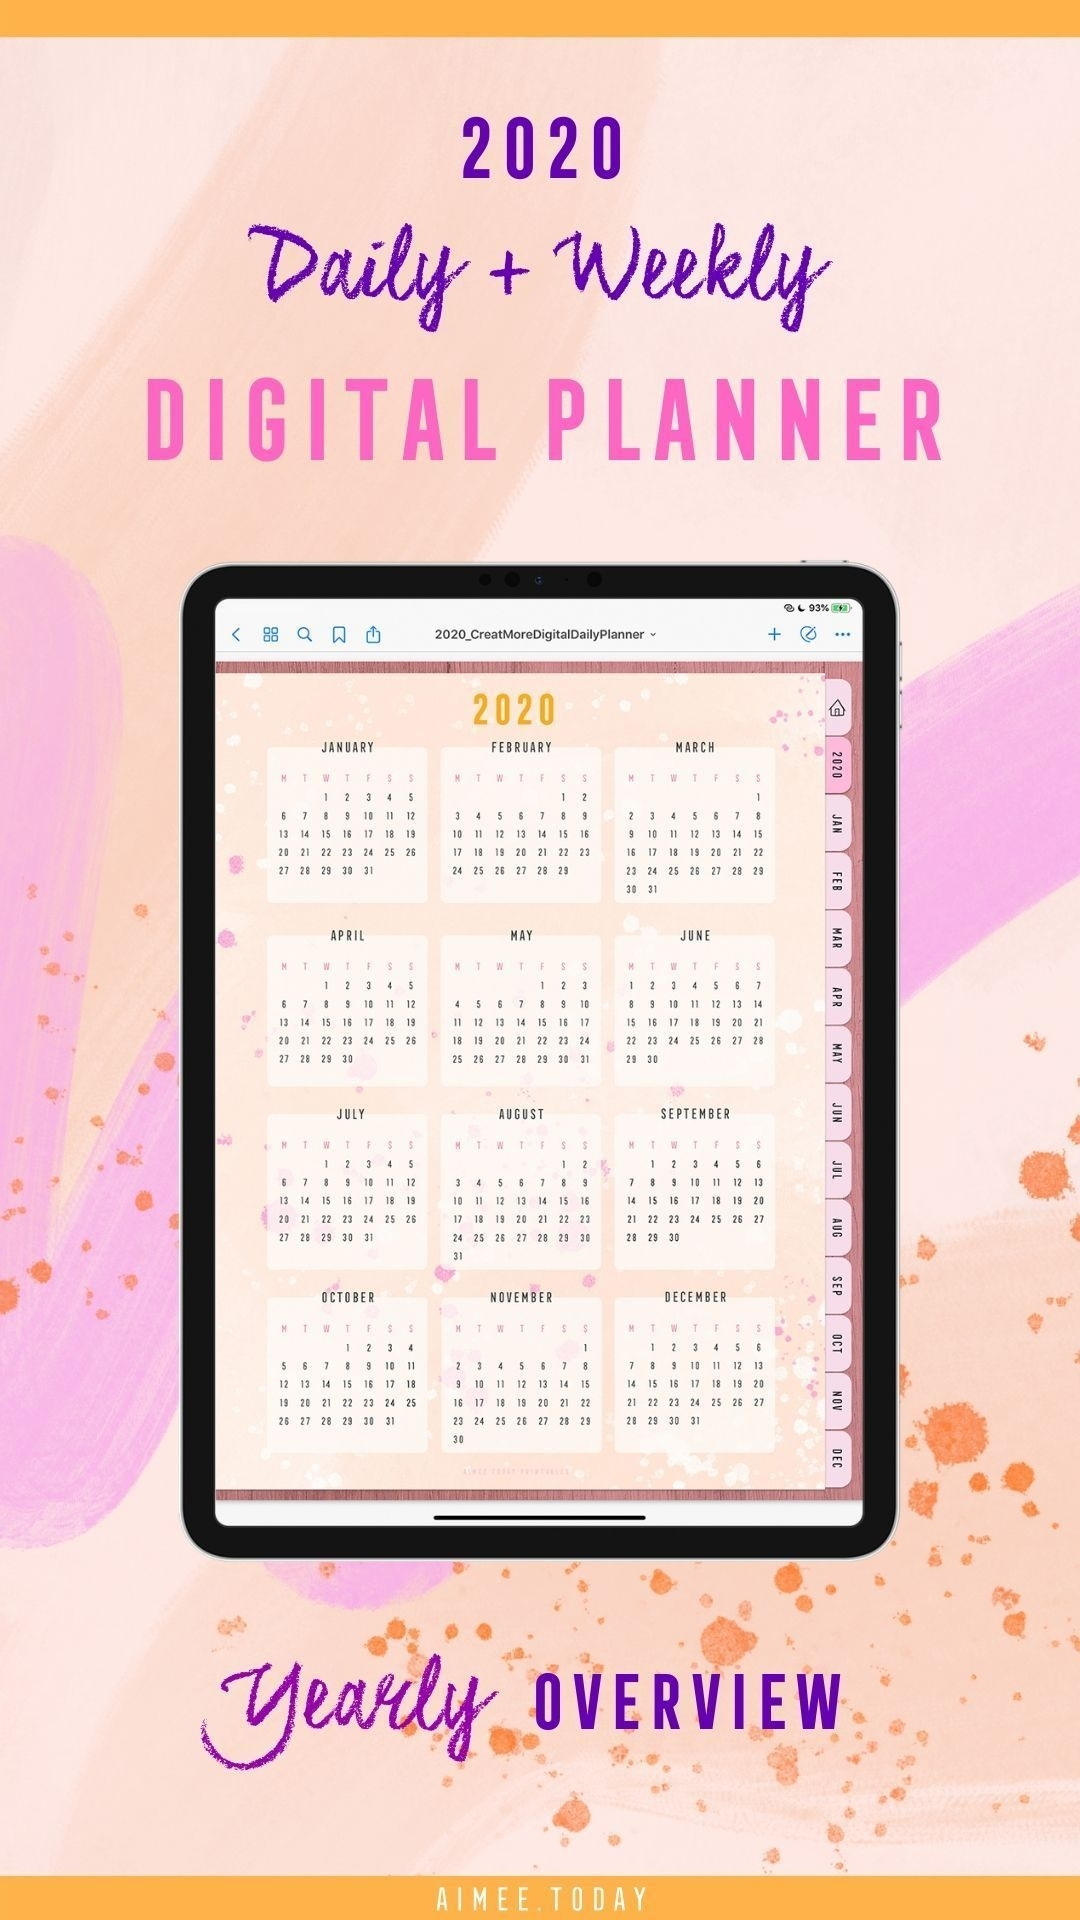 2020 Dated Digital Planner For Ipad To Use In Your Goodnotes